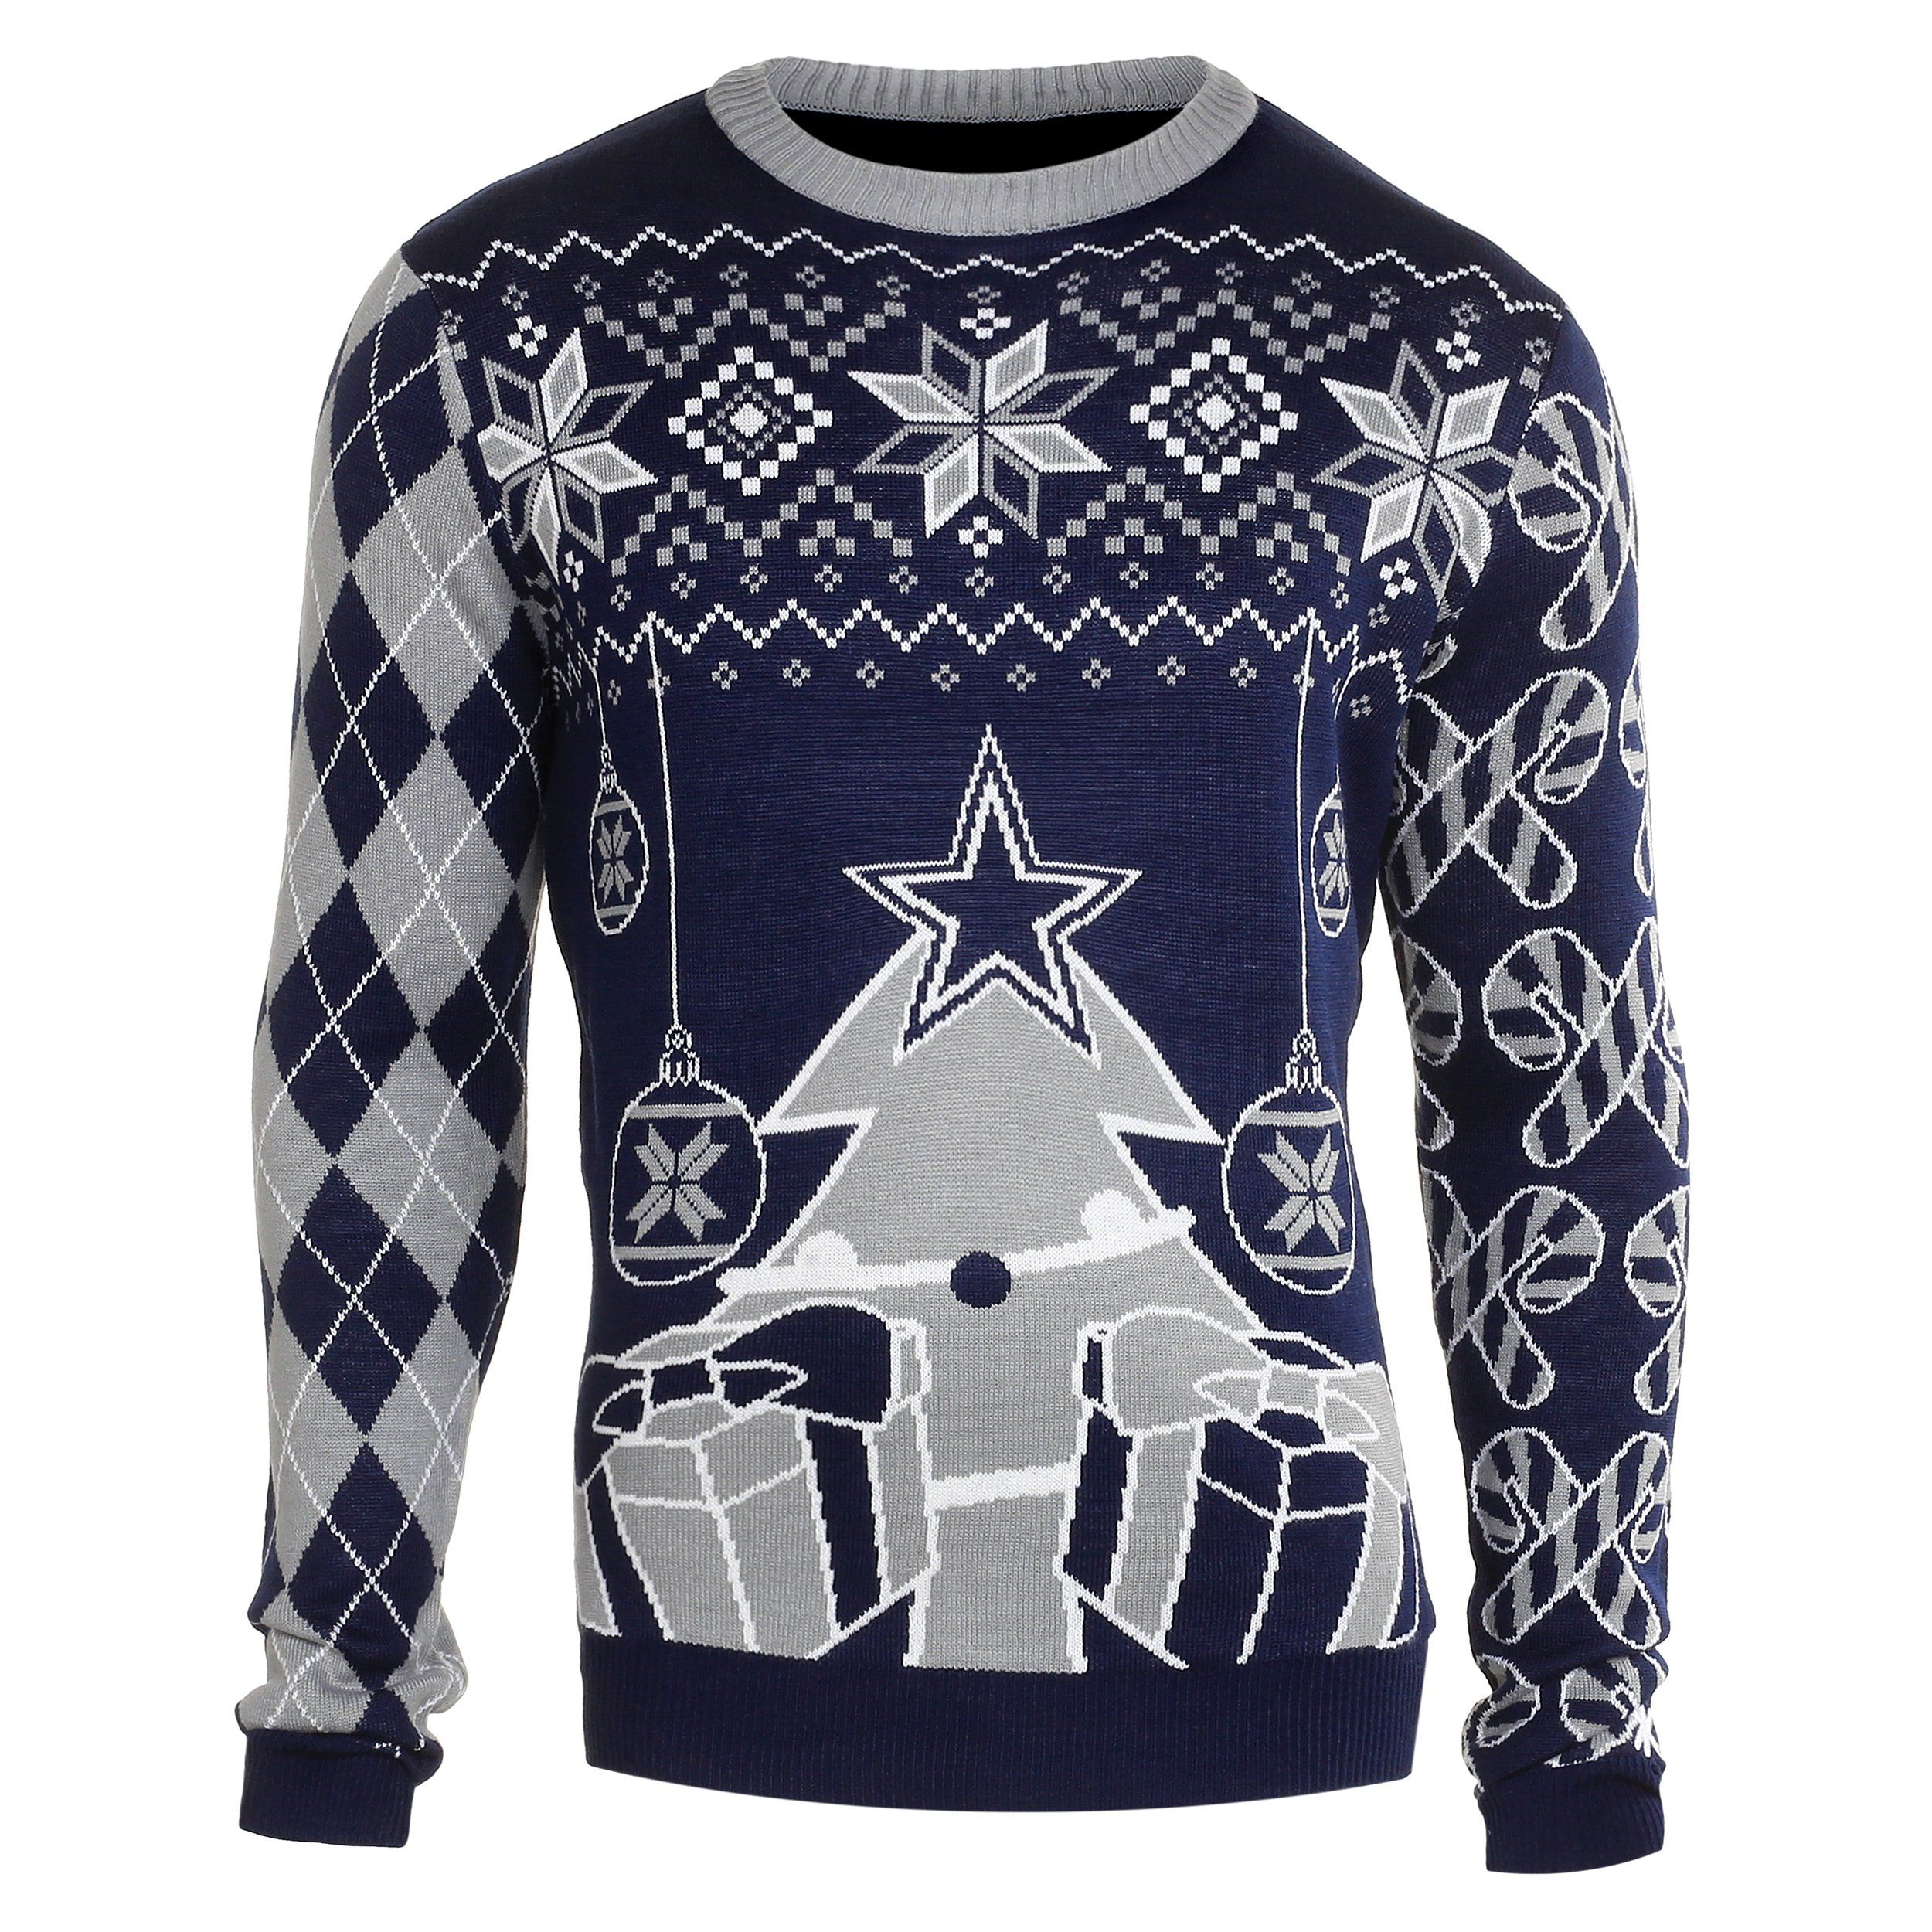 02cc3cbf3 Dallas Cowboys Ugly Christmas Sweaters. If you re going to be forced to  wear ugly Christmas sweaters